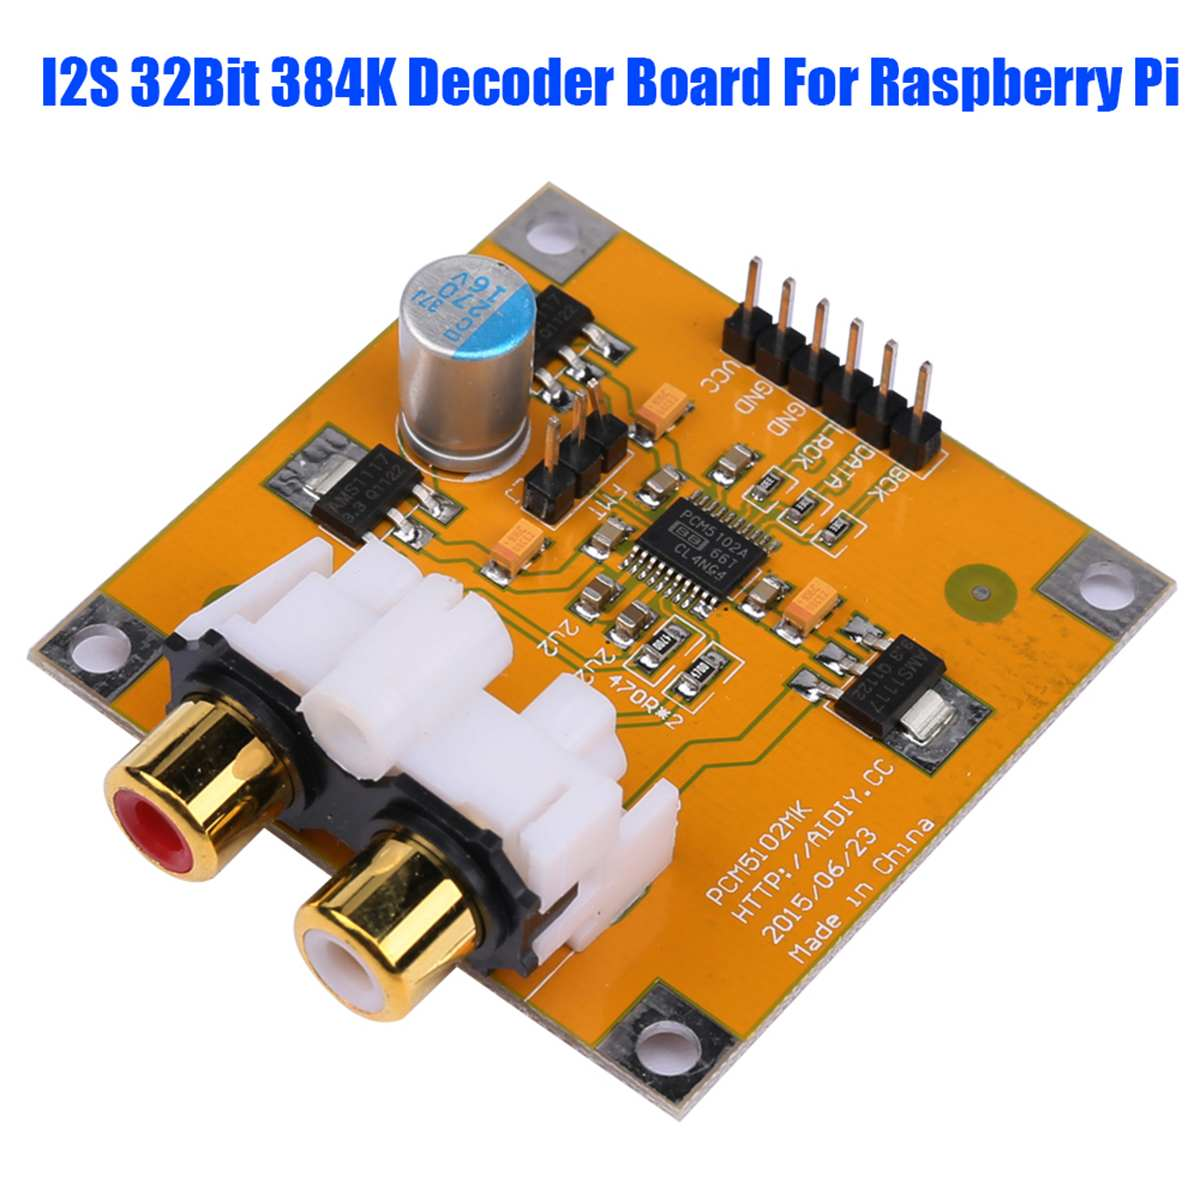 Back To Search Resultsconsumer Electronics Cliate 1pc Dac Decoder Board M5102/pcm5102a I2s 32bit 384k For Raspberry Pi Red Core Player Accessories & Parts